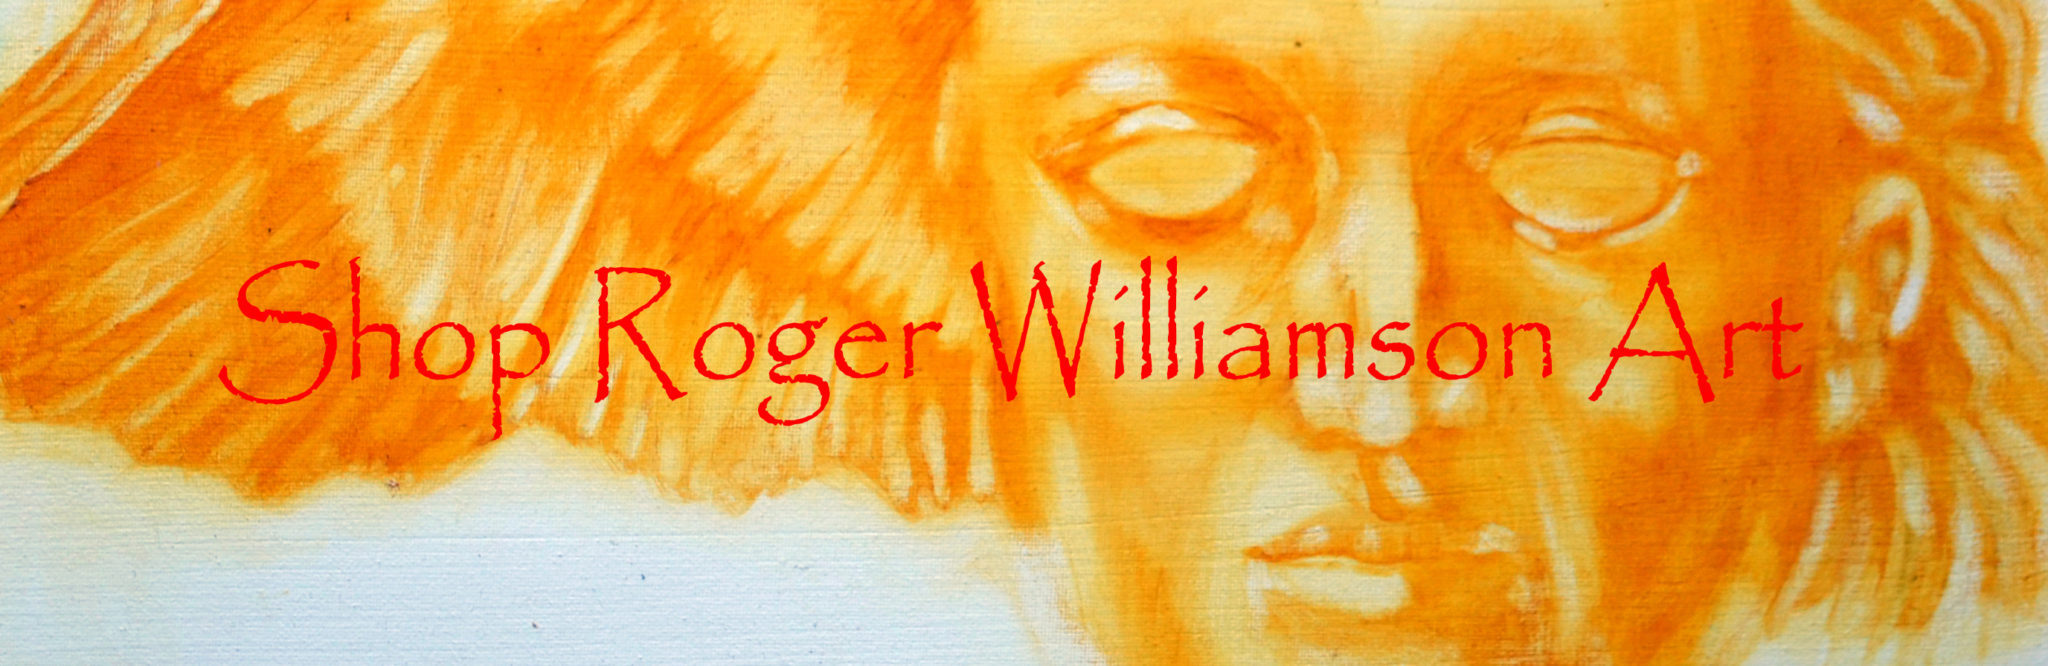 Shop Roger Williamson Art. Original Art, Prints, Greeting Cards, Clothing and Gift Items.